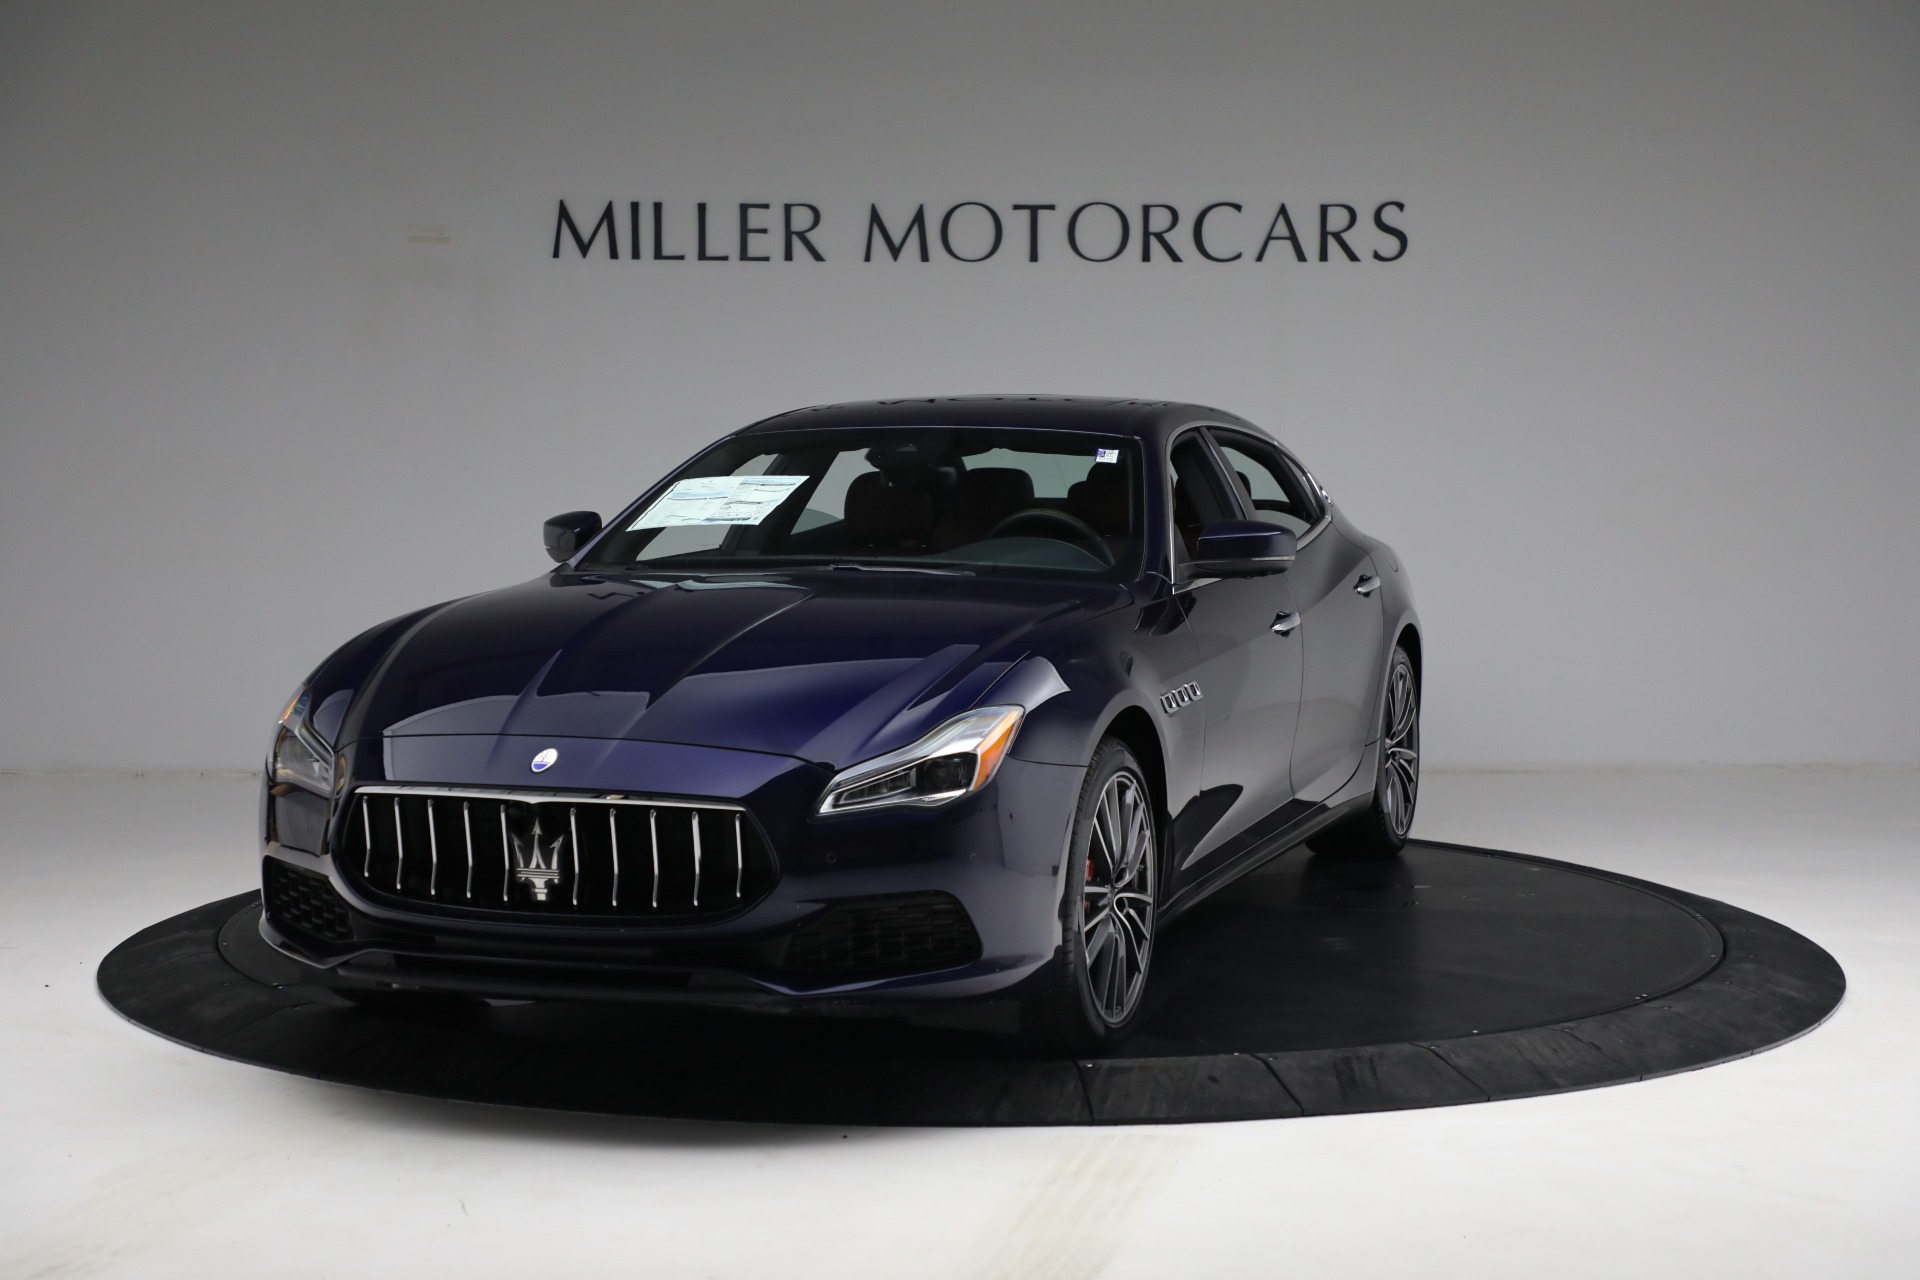 New 2021 Maserati Quattroporte S Q4 for sale Sold at Rolls-Royce Motor Cars Greenwich in Greenwich CT 06830 1